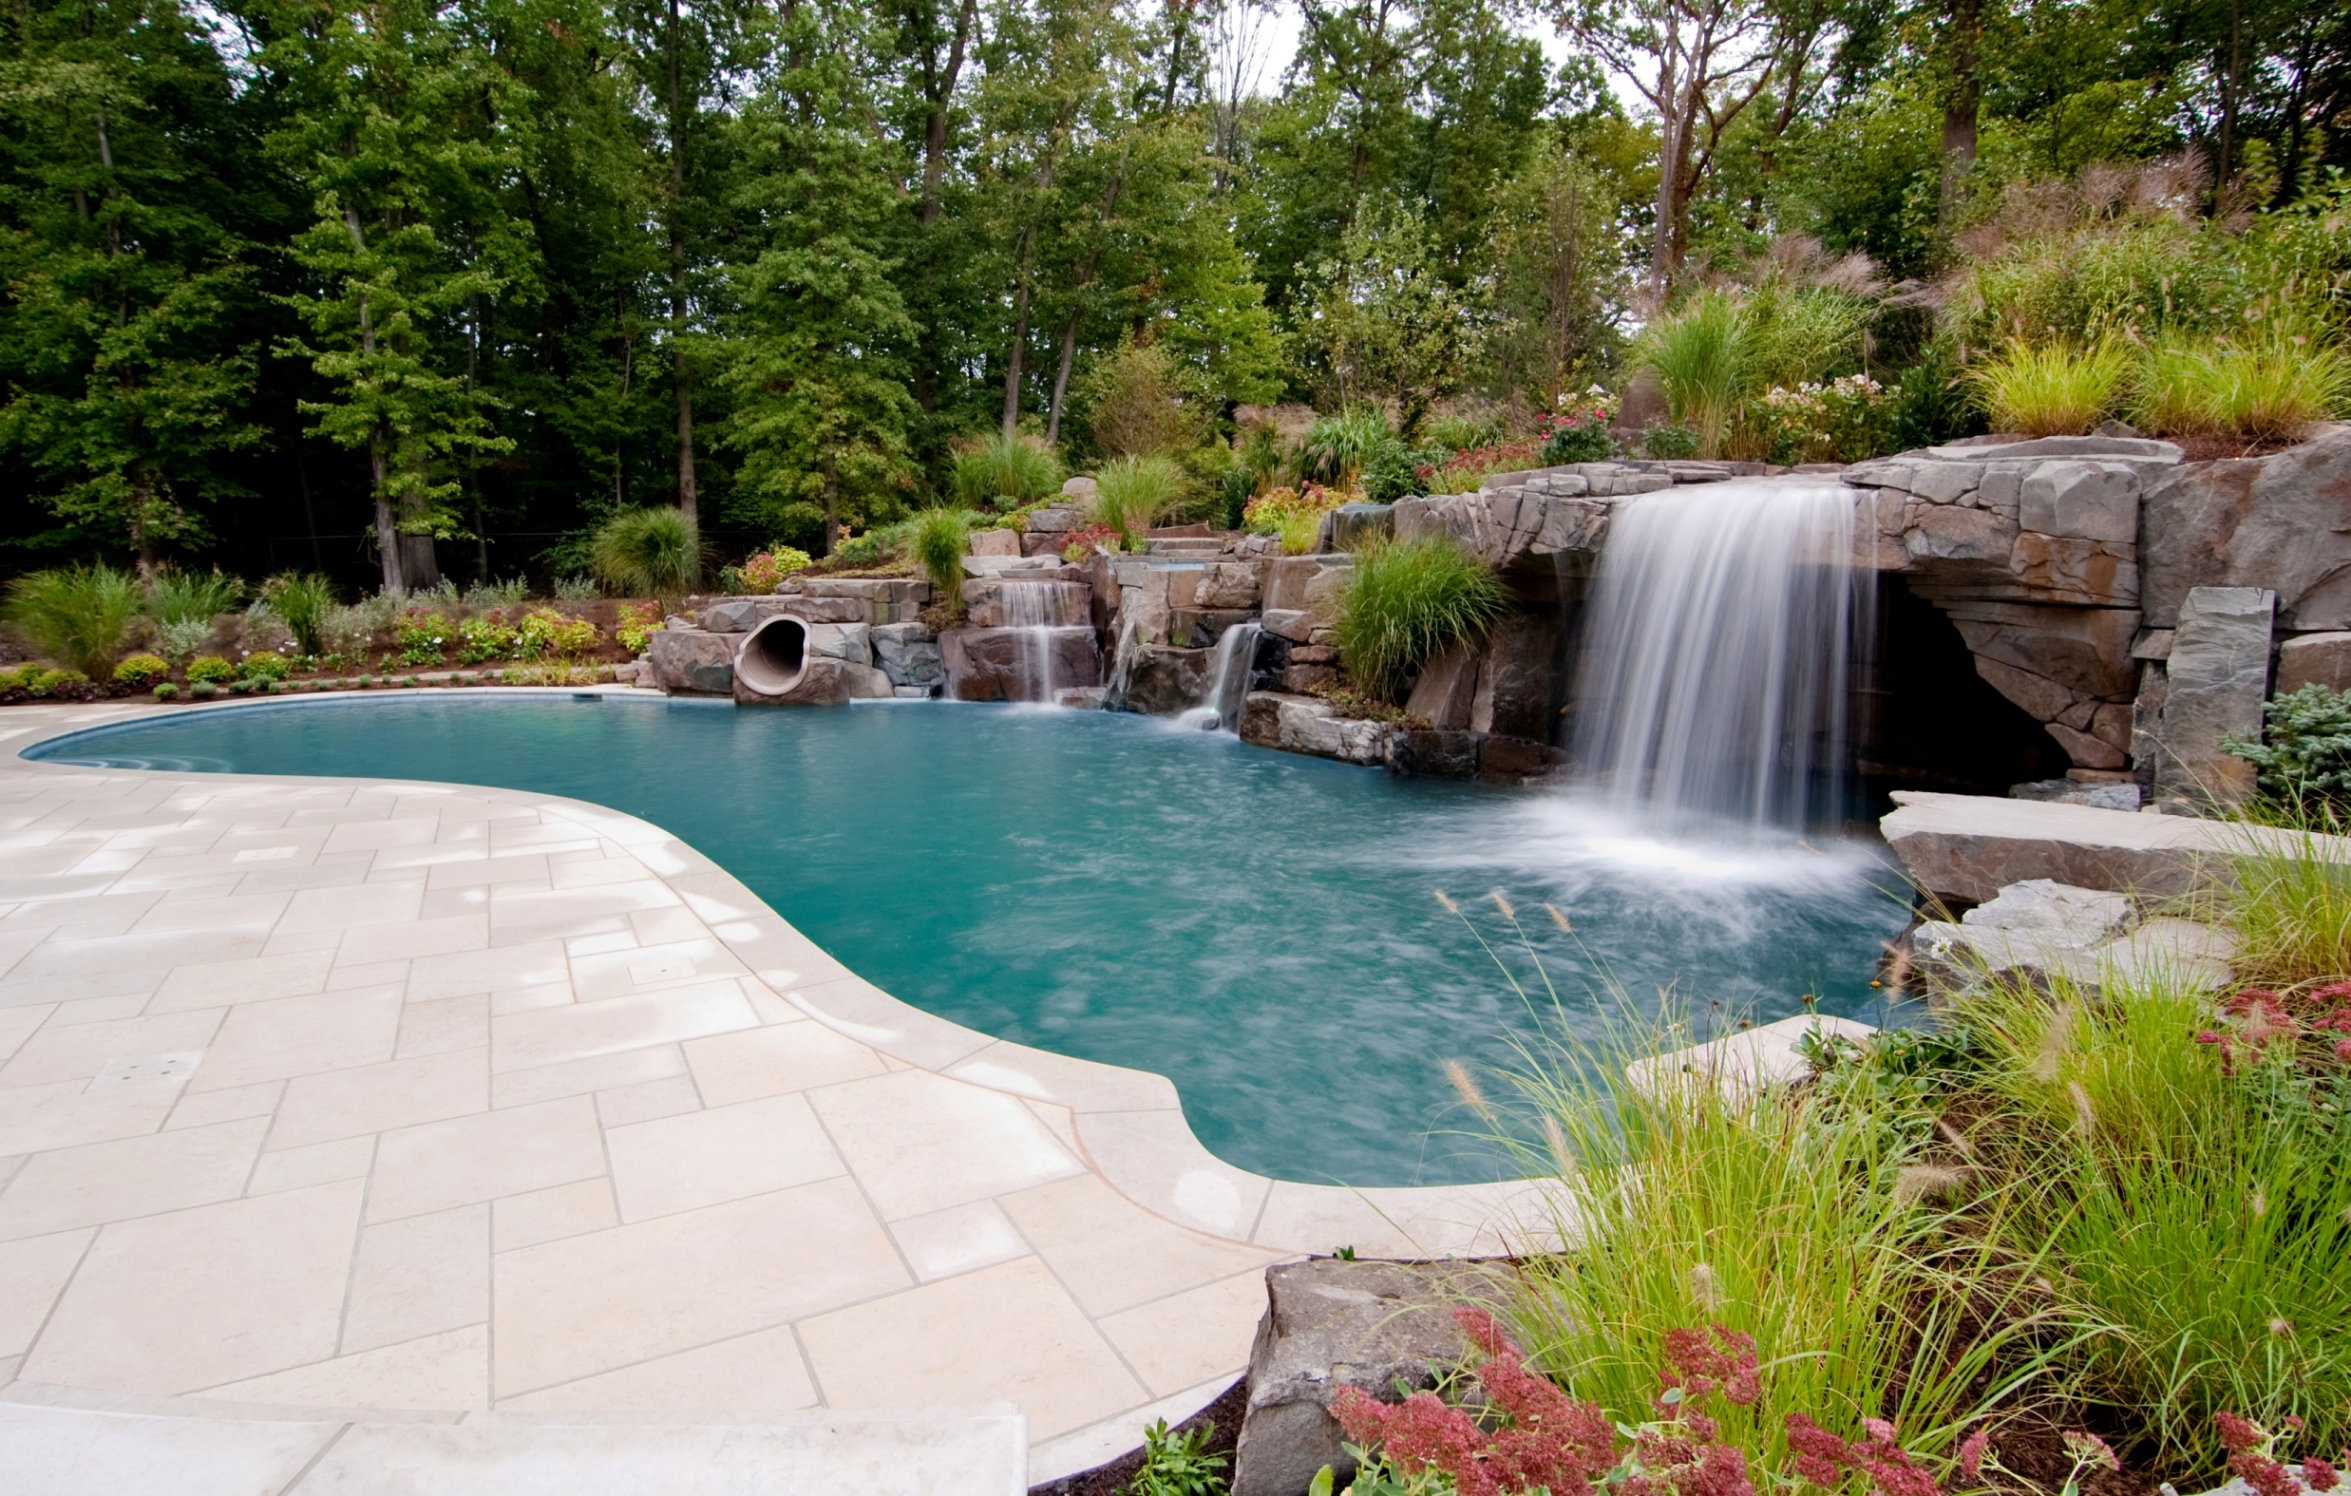 New jersey inground pool company earns international award for Pool and landscape design